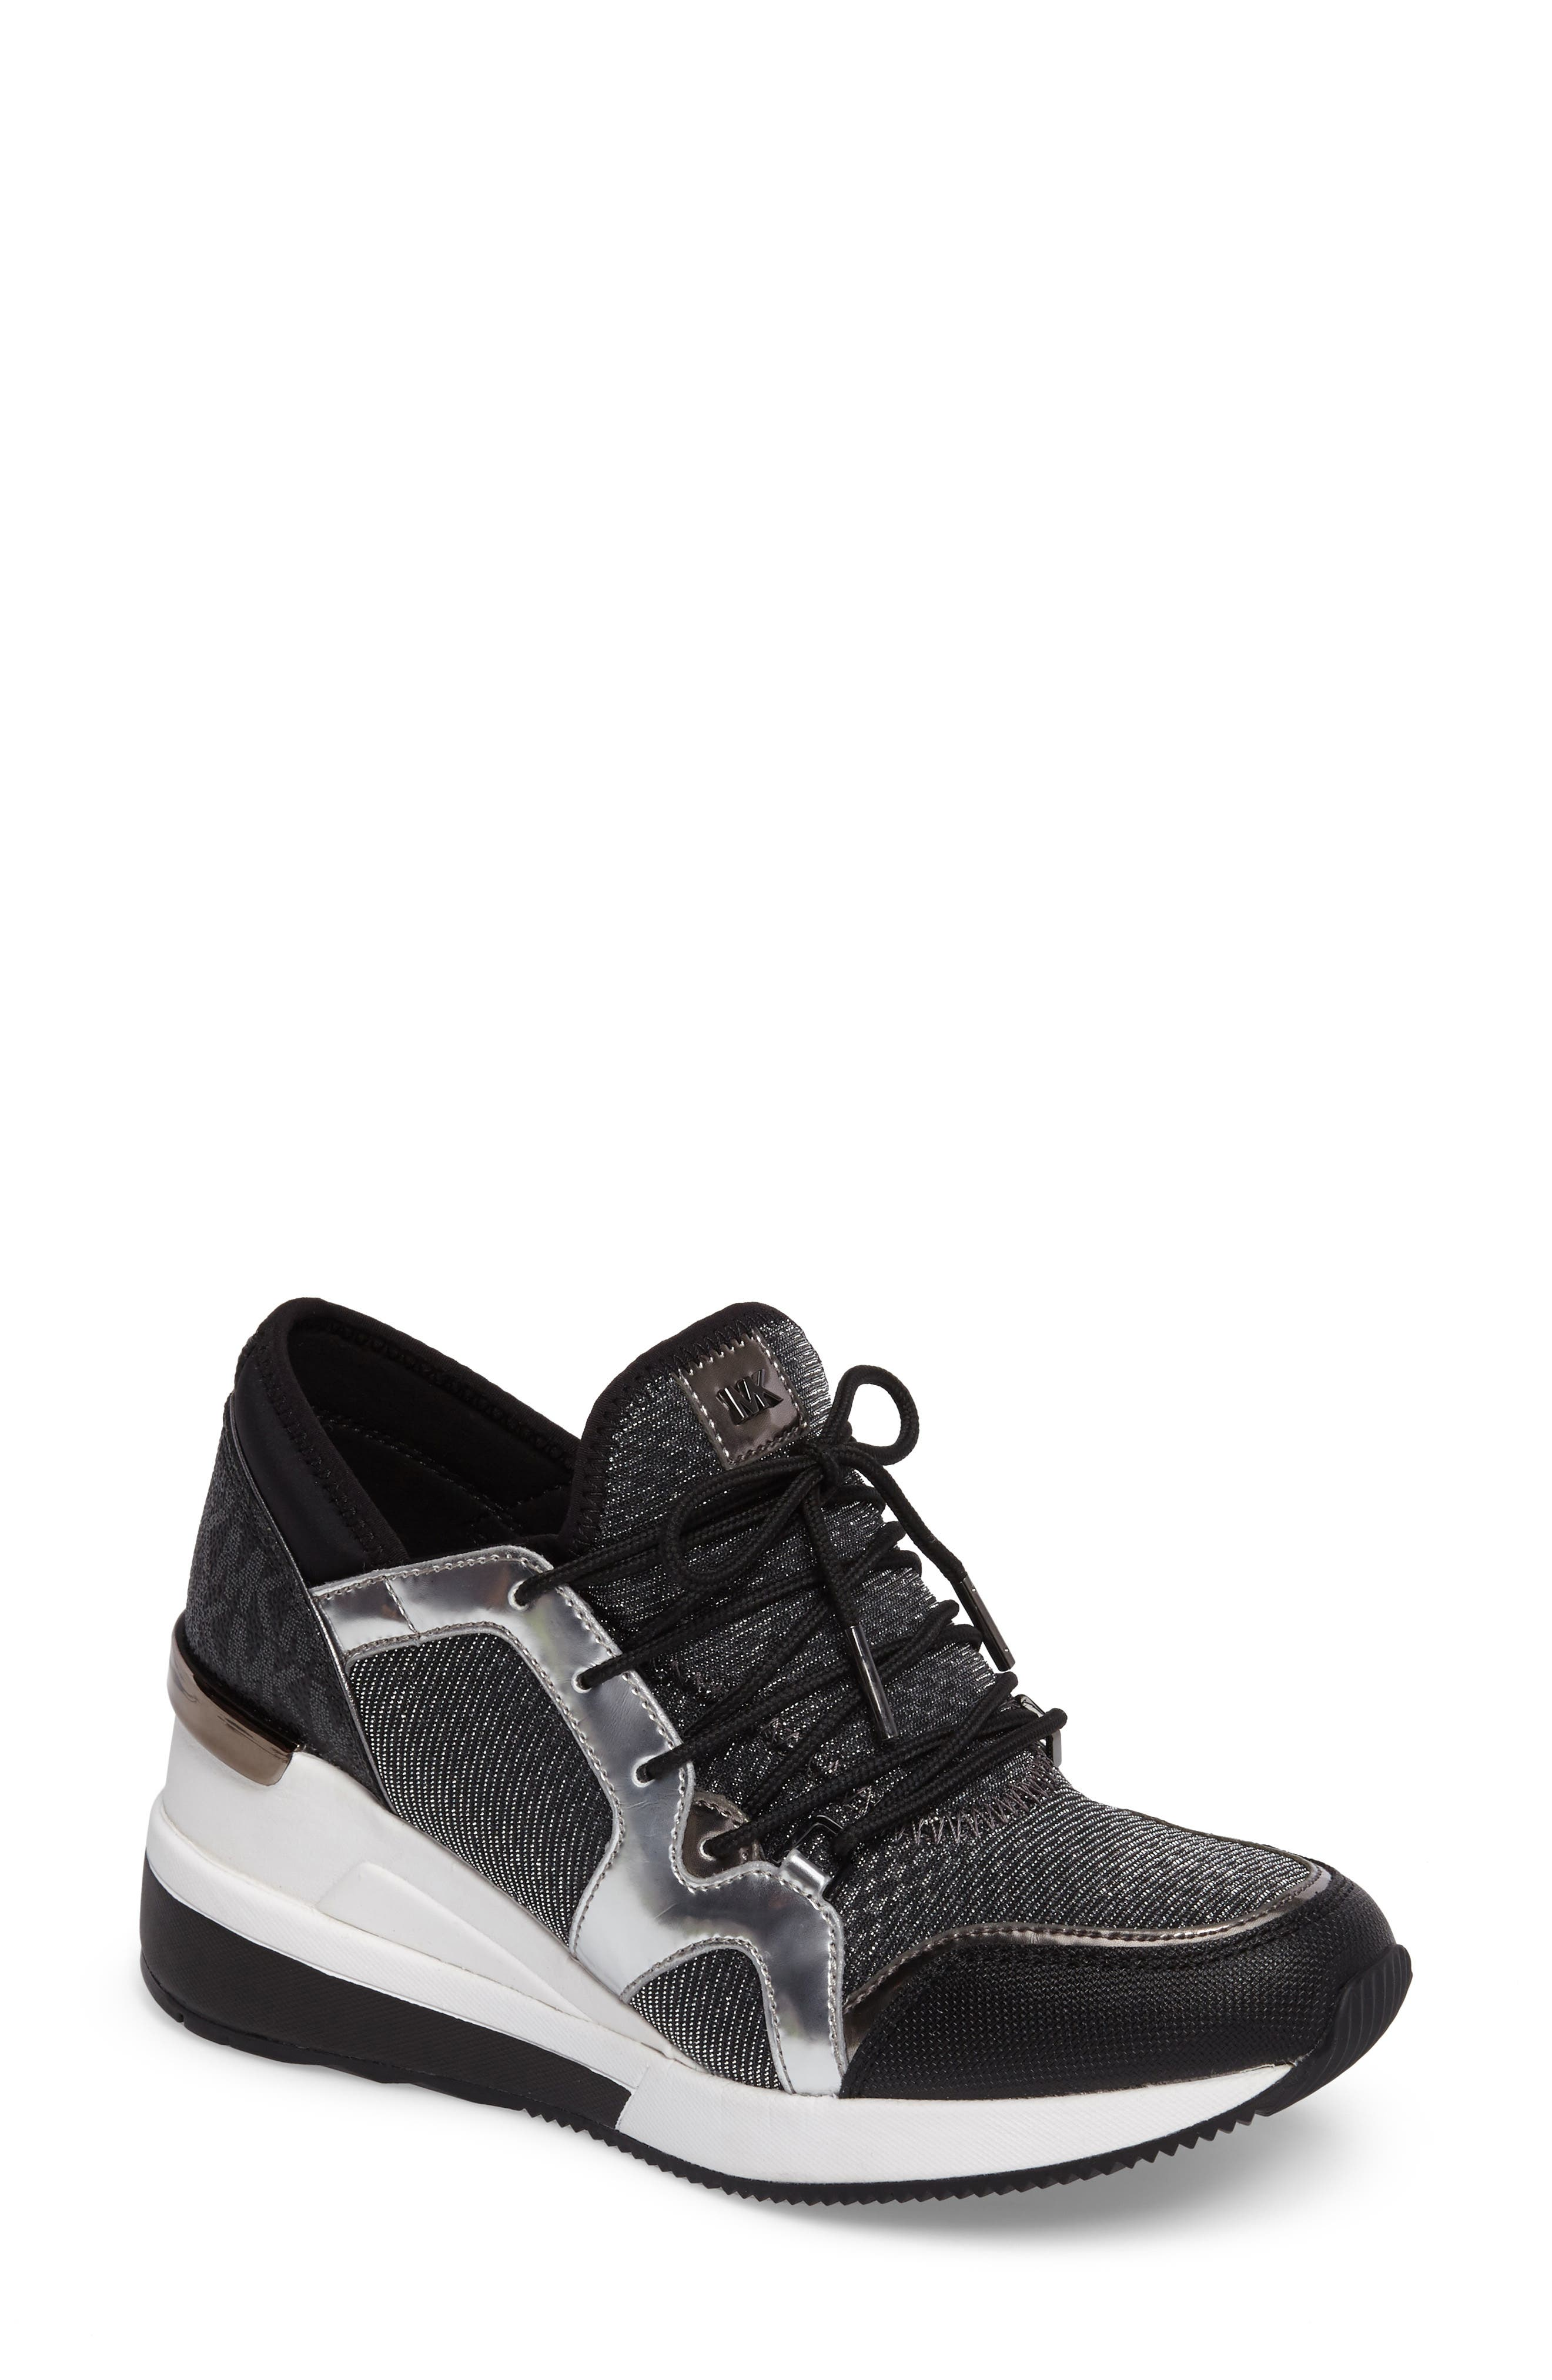 Scout Wedge Sneaker,                             Main thumbnail 1, color,                             041